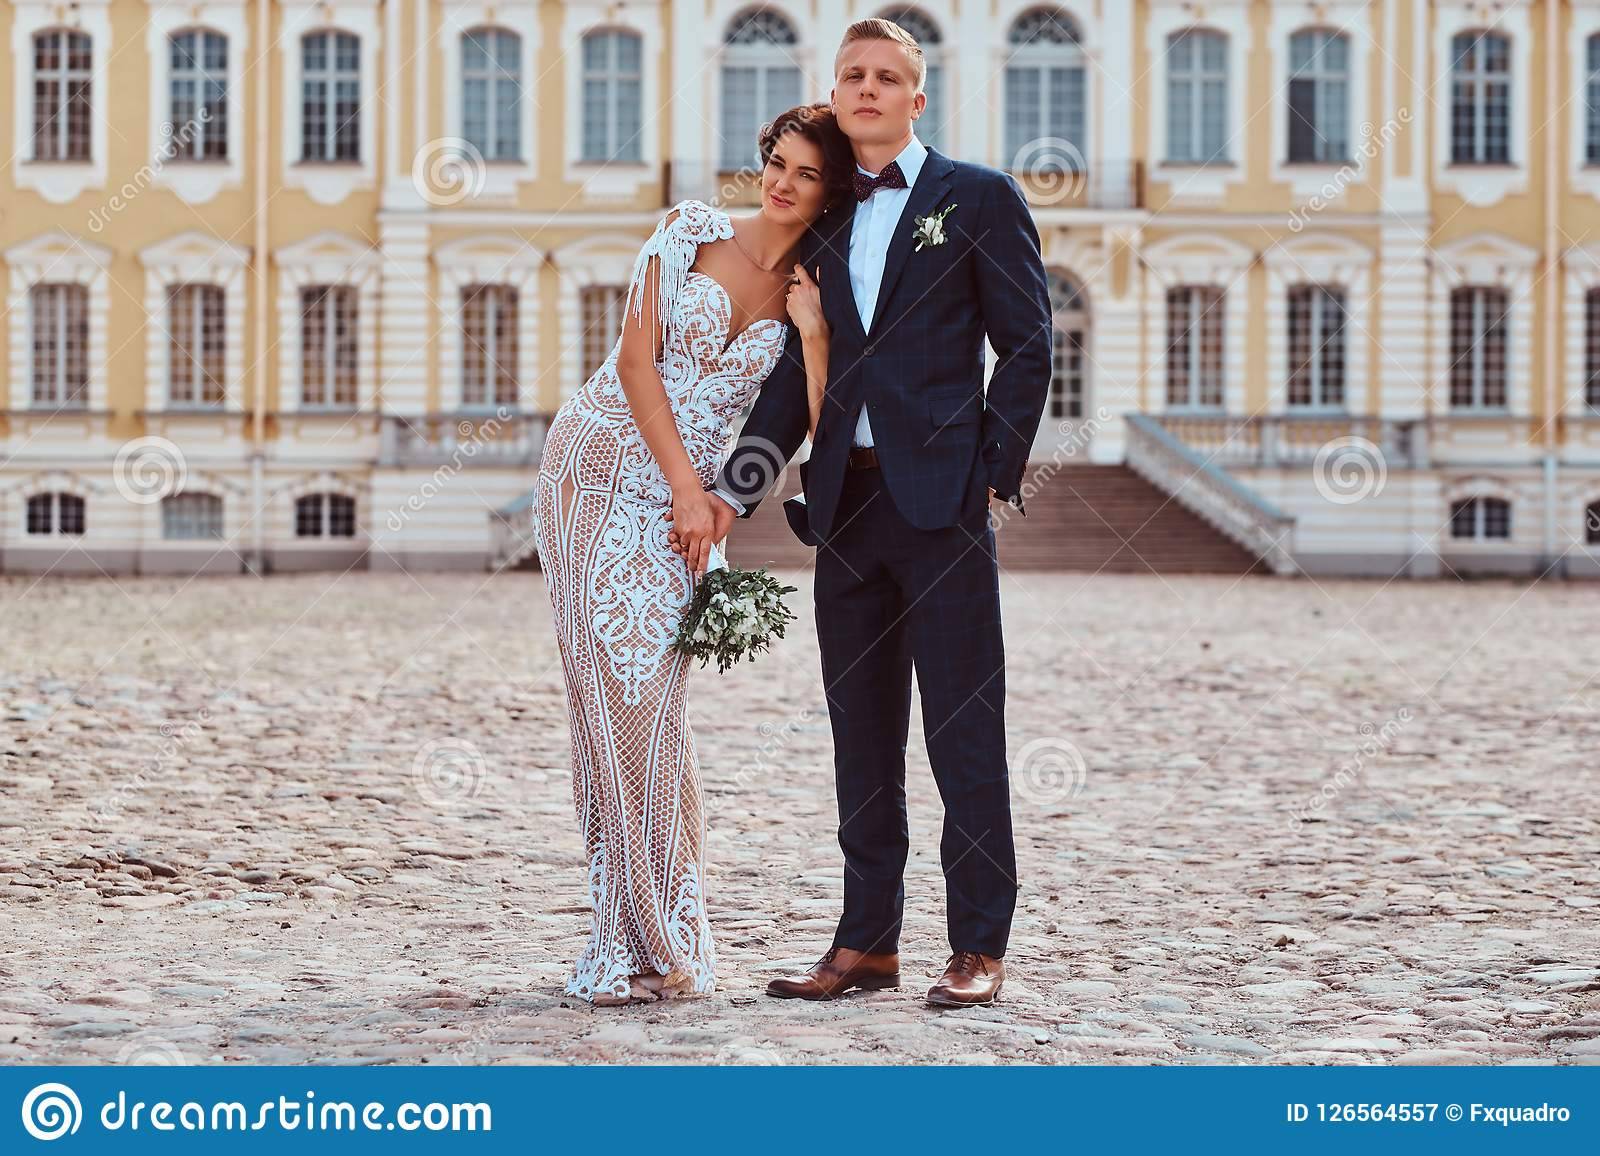 Portrait of happy newlyweds embracing against the backdrop of the facade of the beautiful old palace.